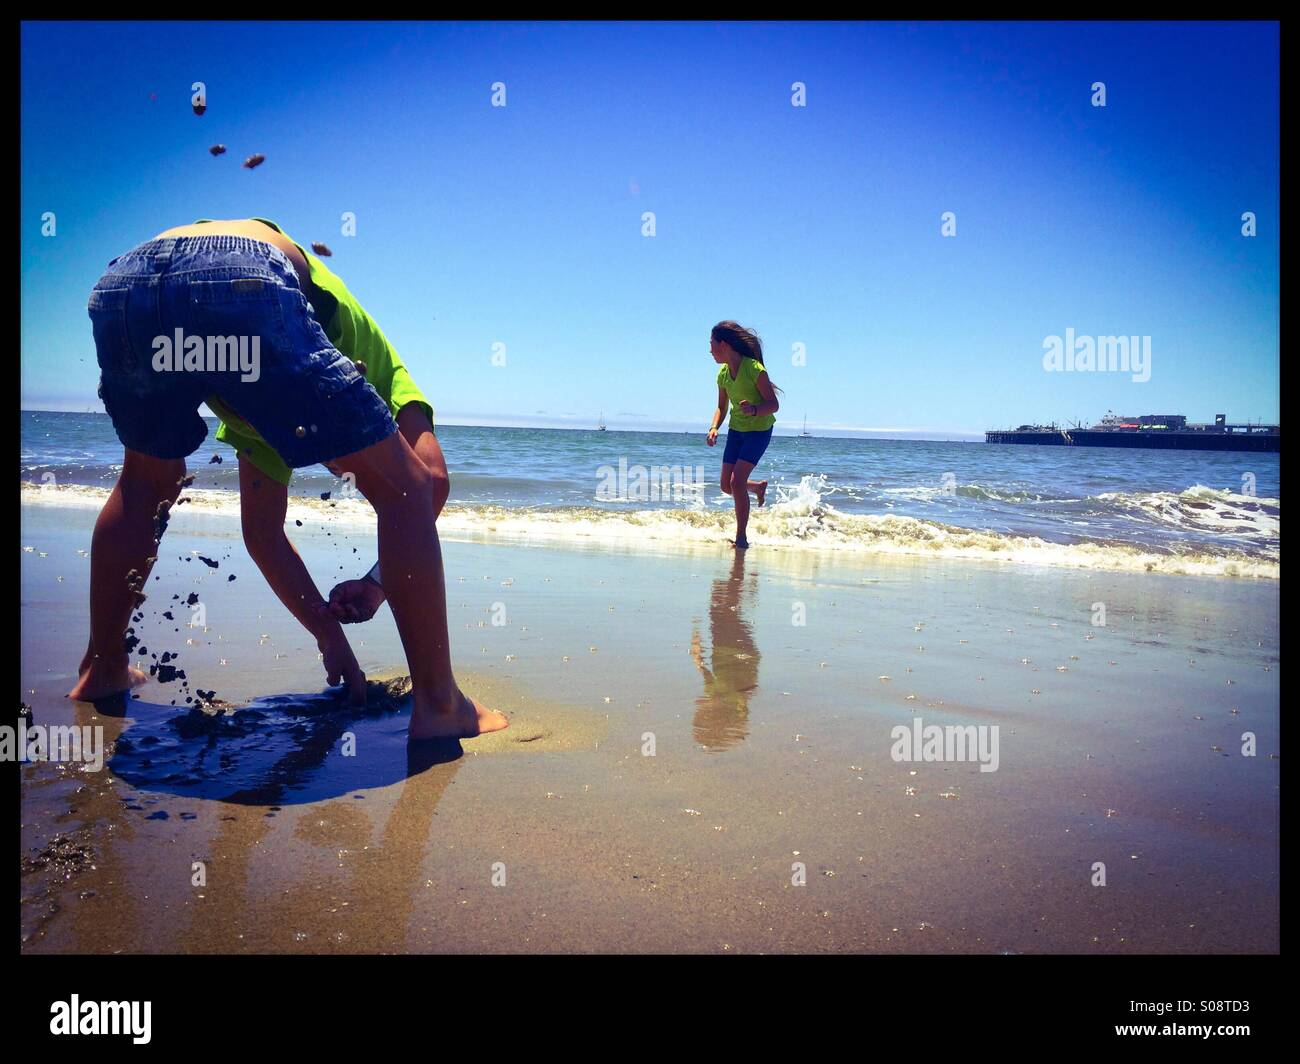 A ten year old and six year old brother and sister play at Seabright State Beach. Santa Cruz, California, USA - Stock Image